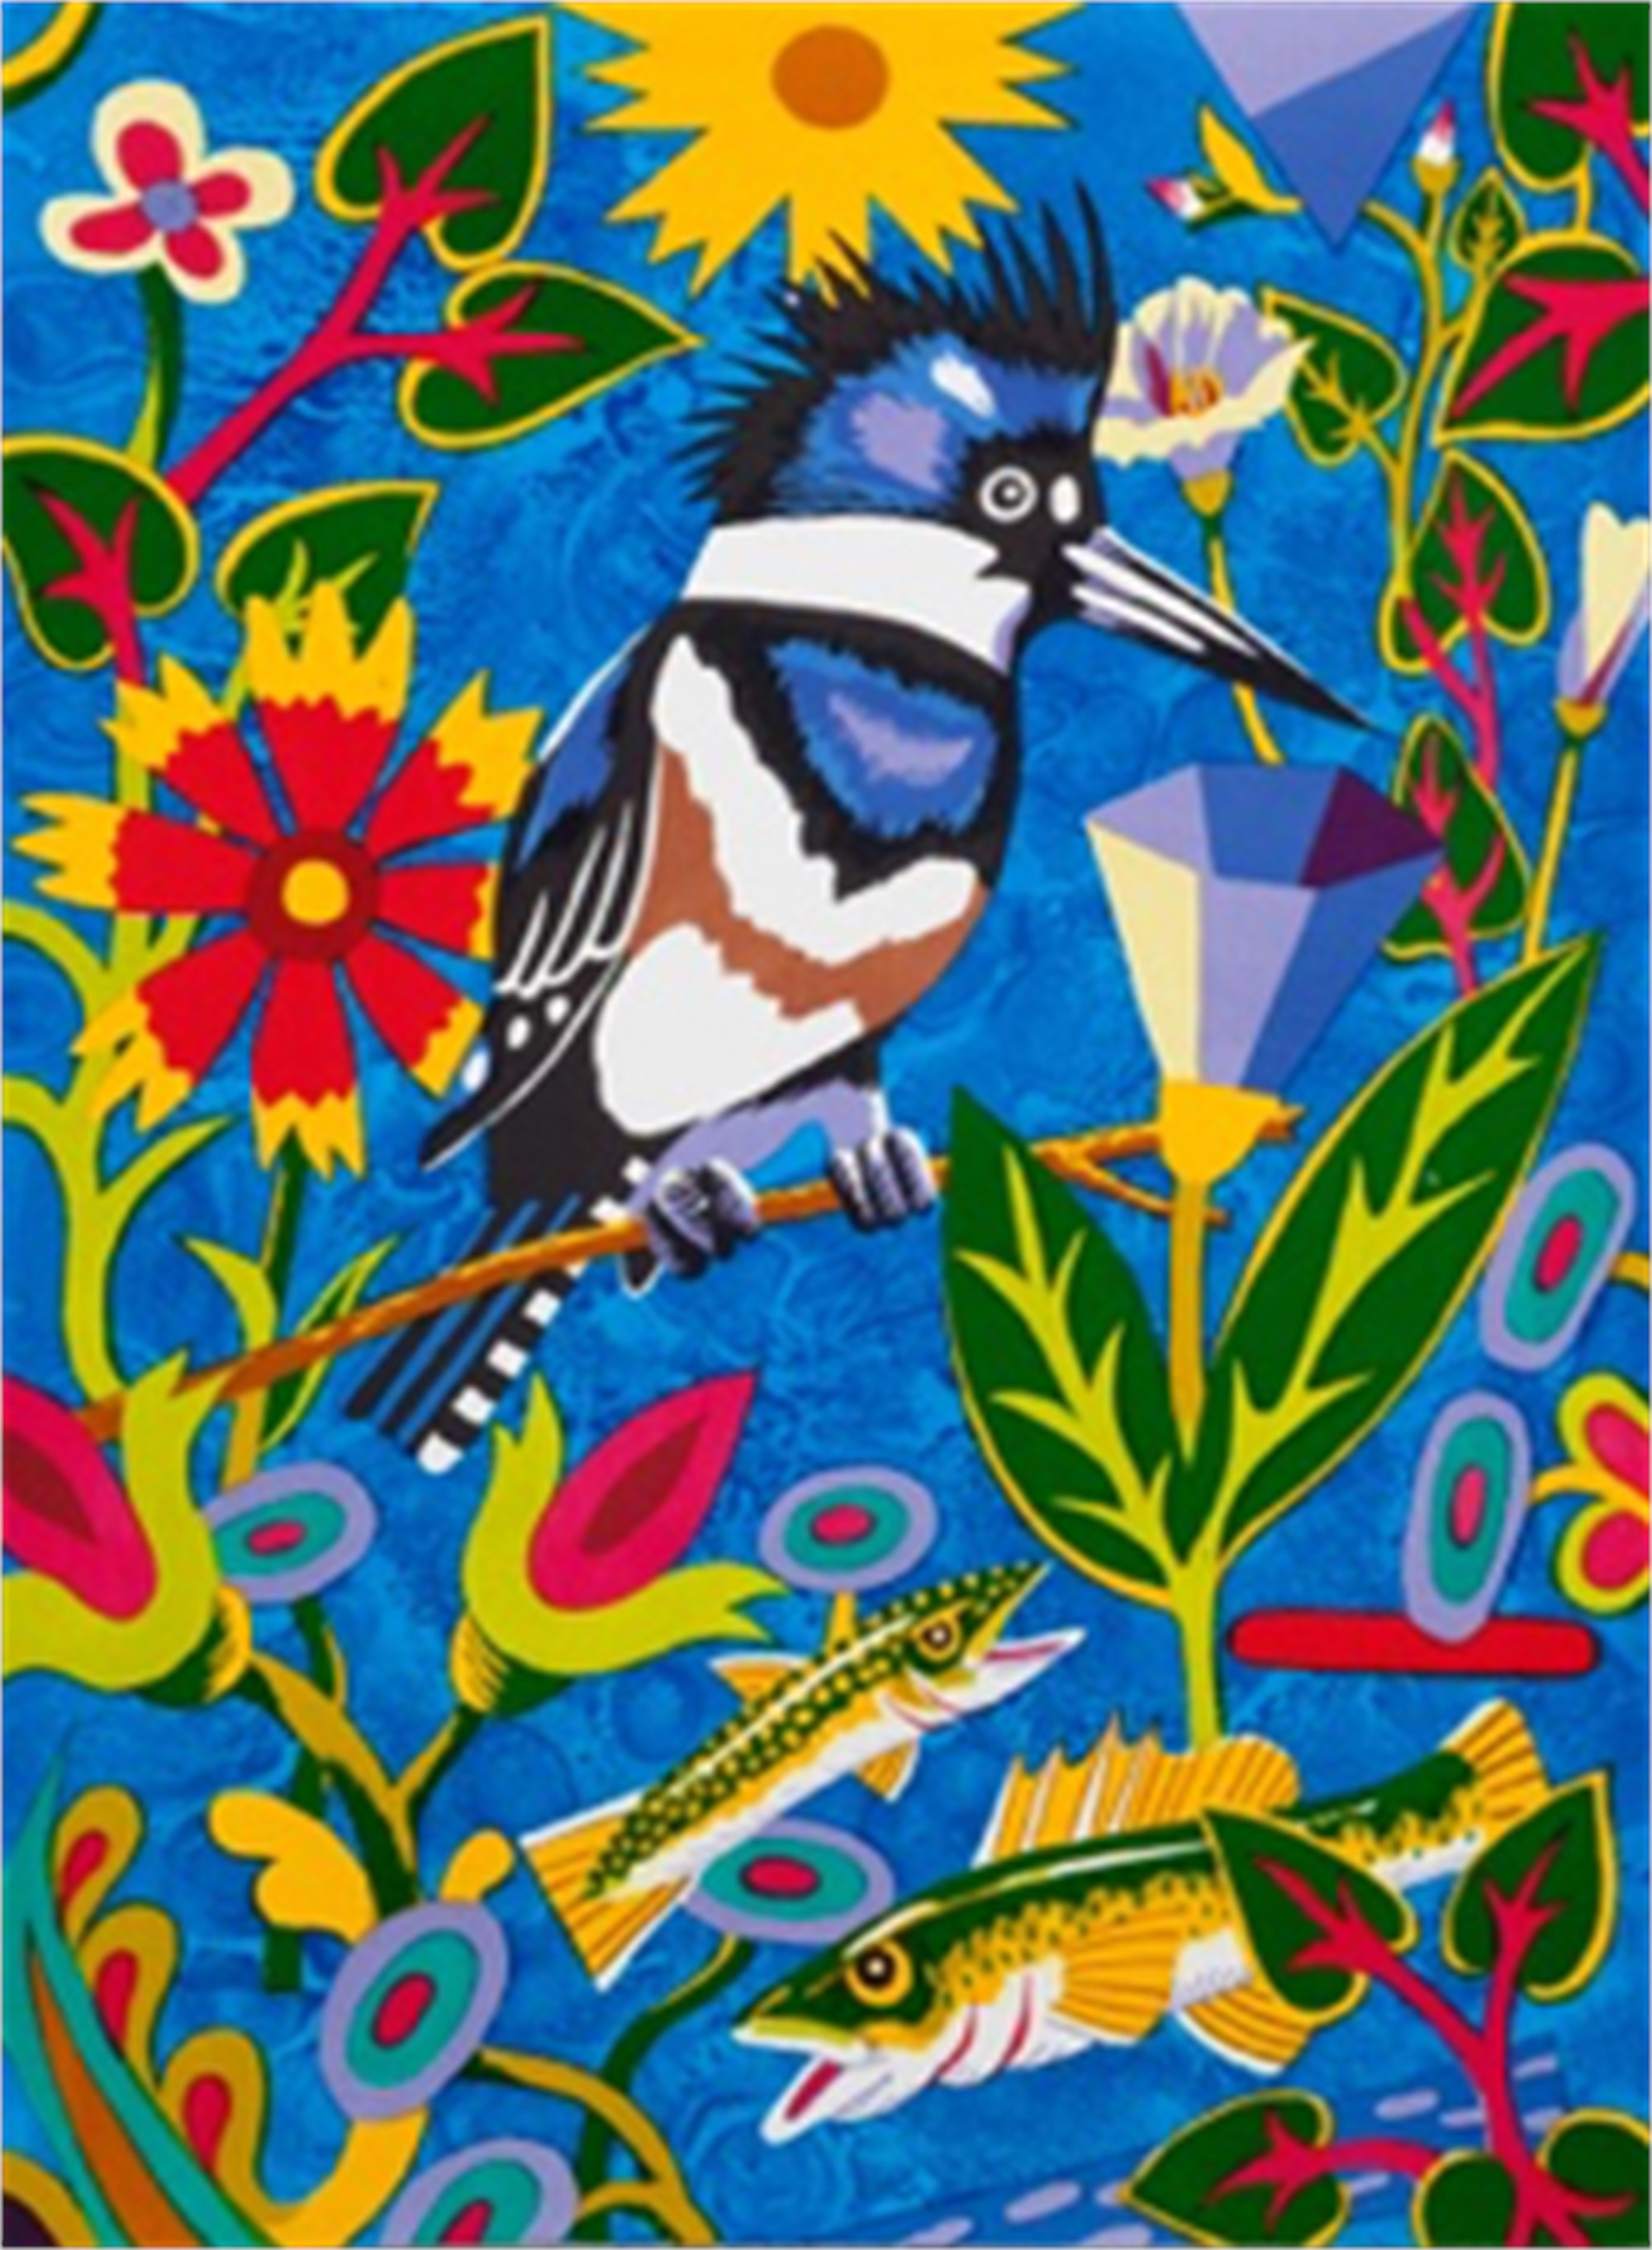 Kingfisher, Into Blue (Edition of 10) by Billy Hassell